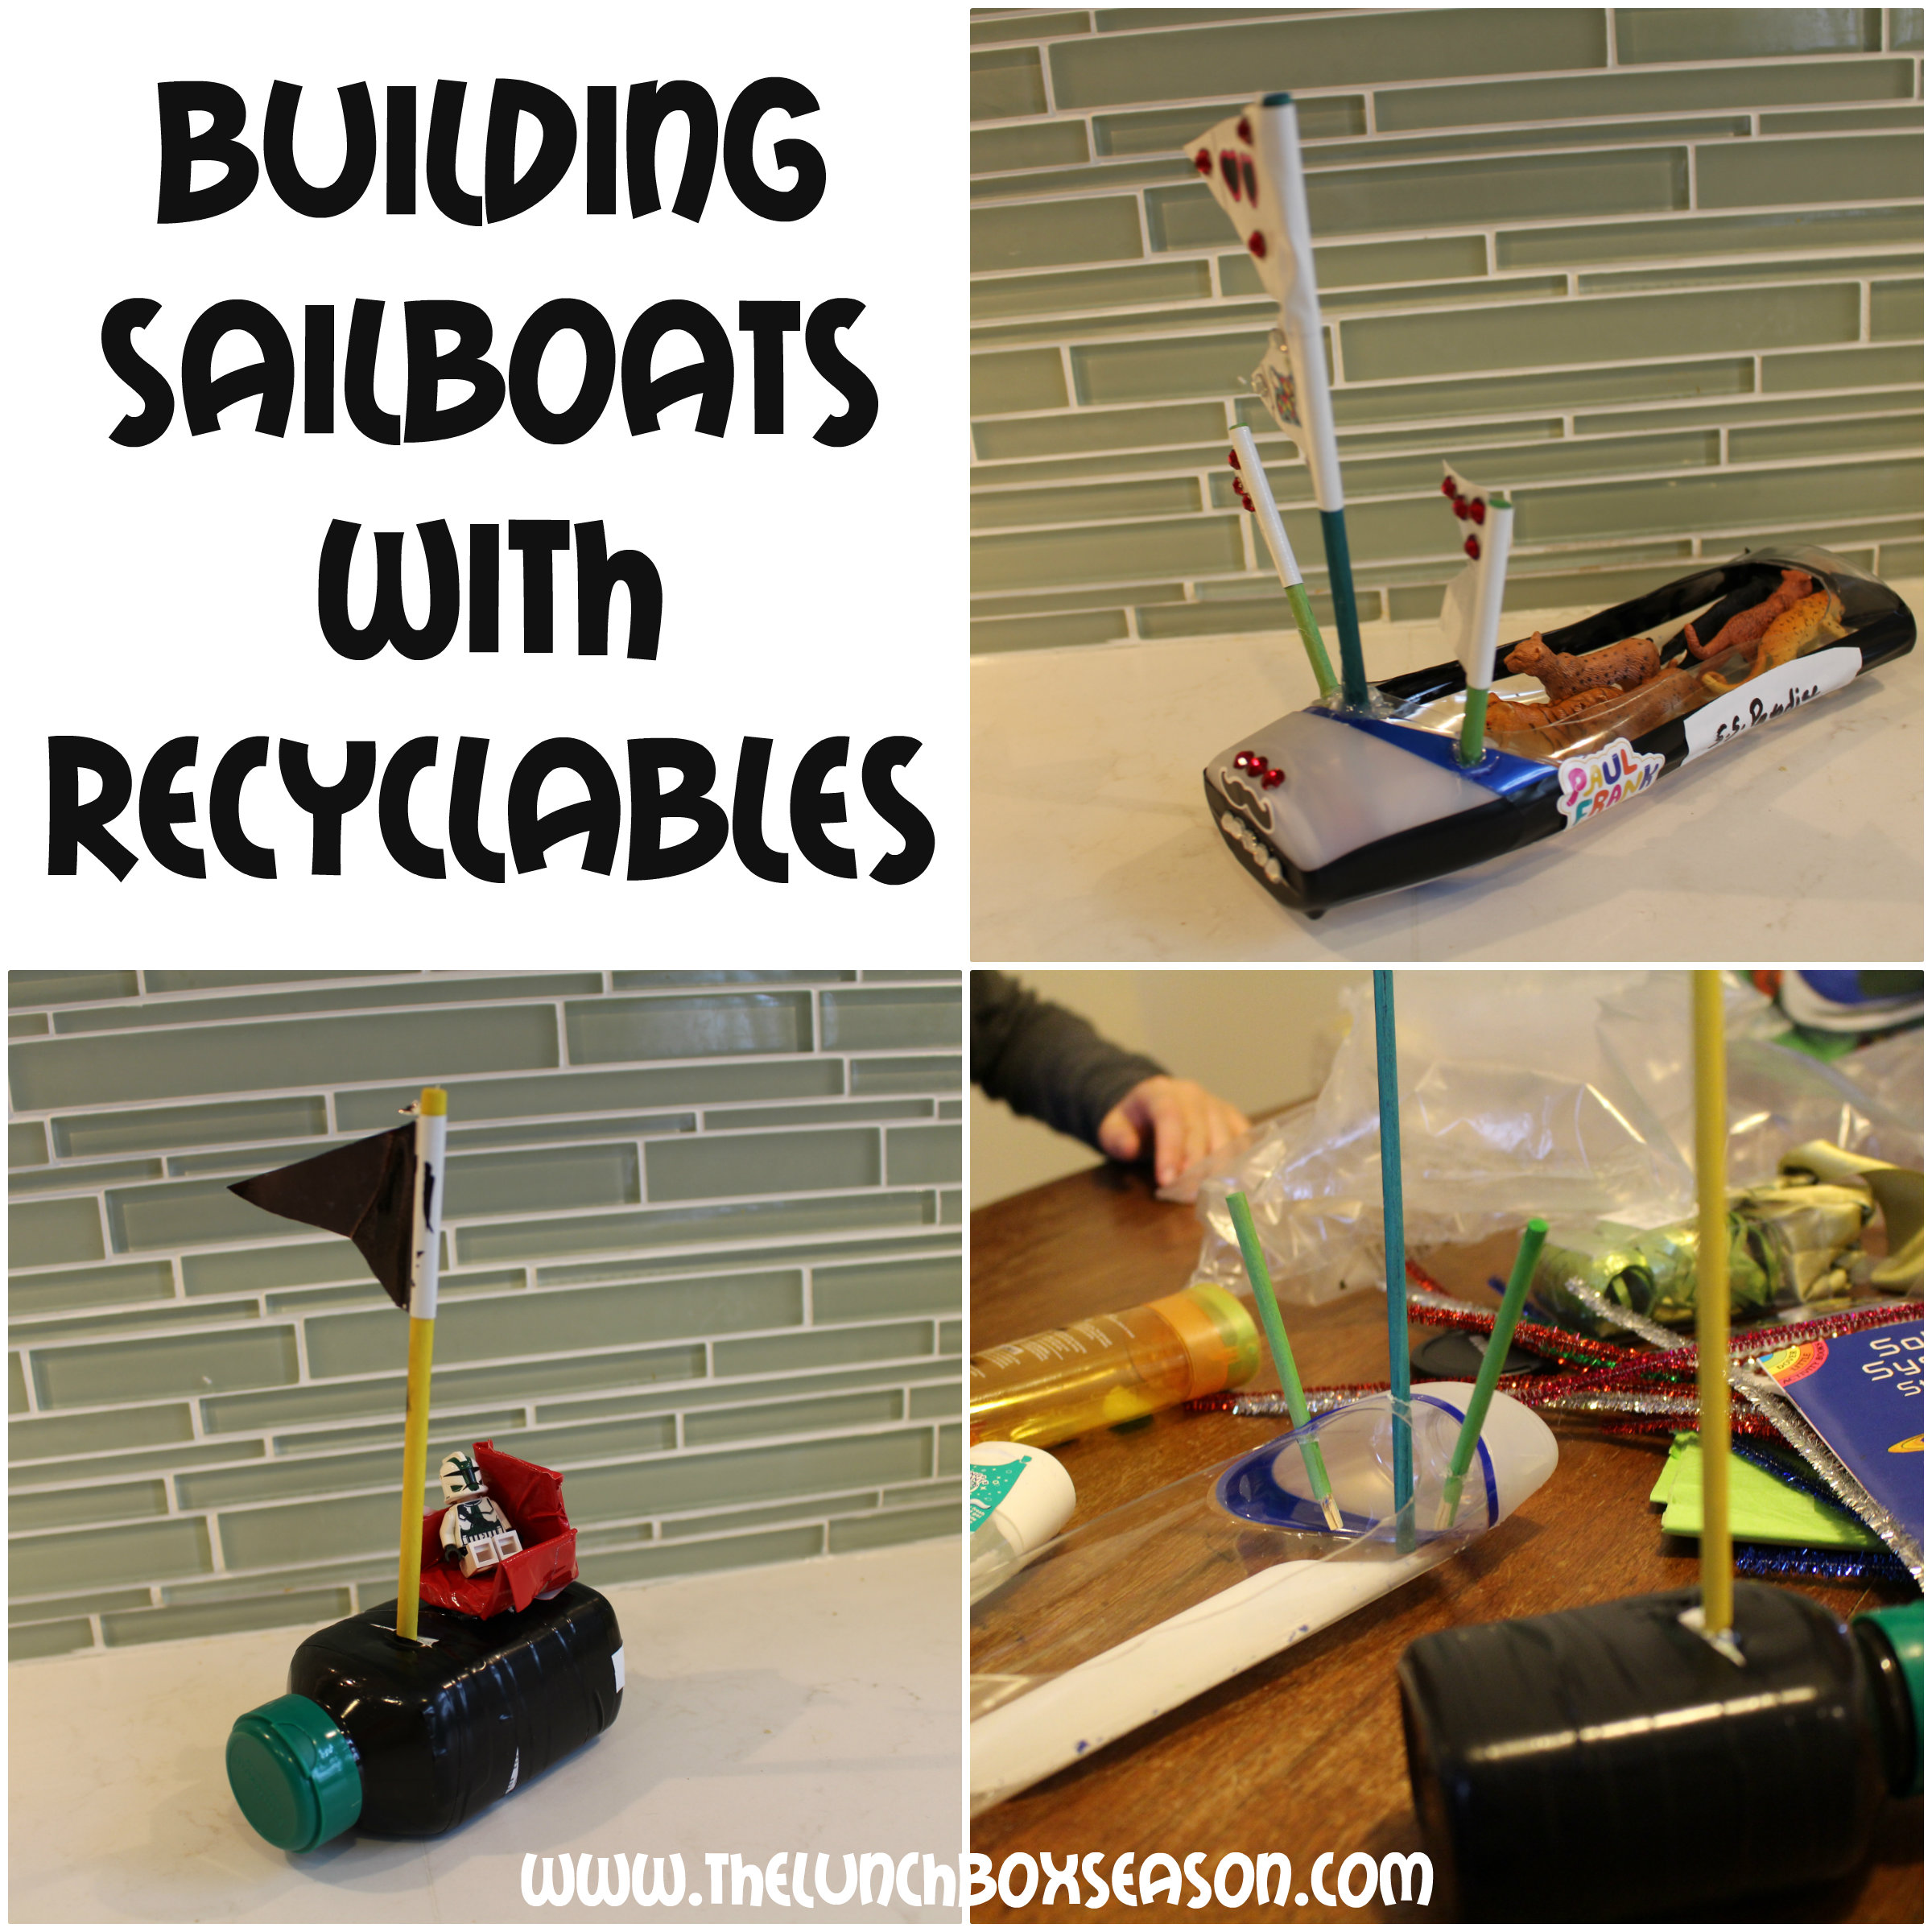 Building Sailboats with Recyclables